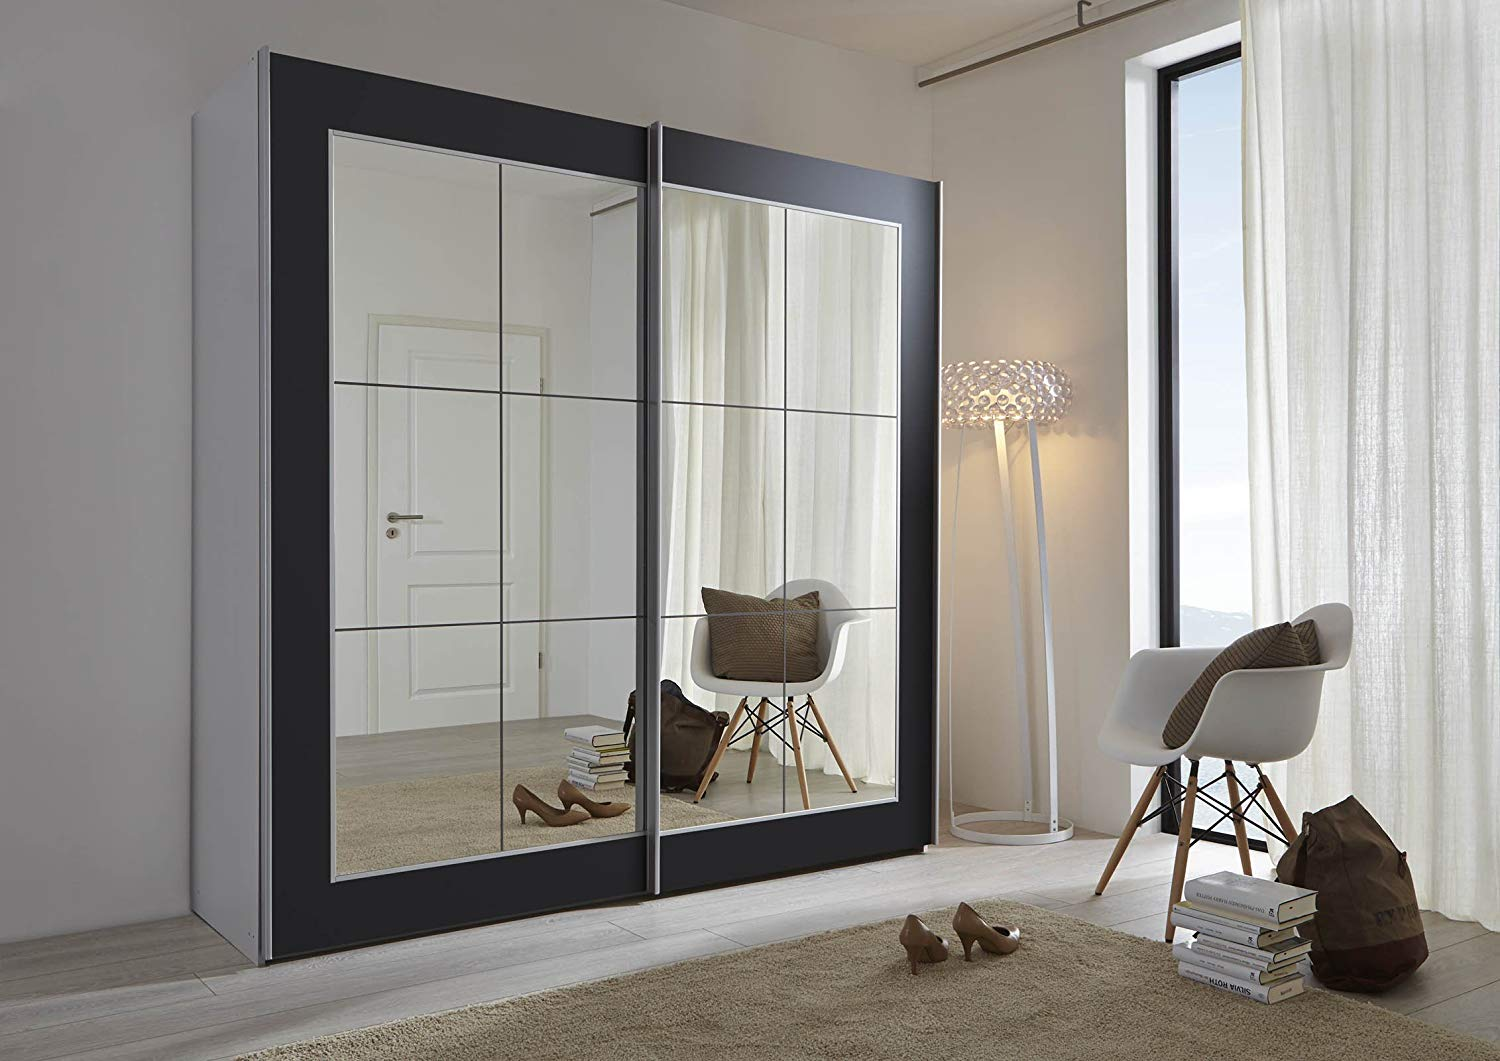 Sliding door wardrobes with mirror schlafzimmer lattice: black sliding door wardrobe with mirror - 202cm or  301cm STFEIRJ